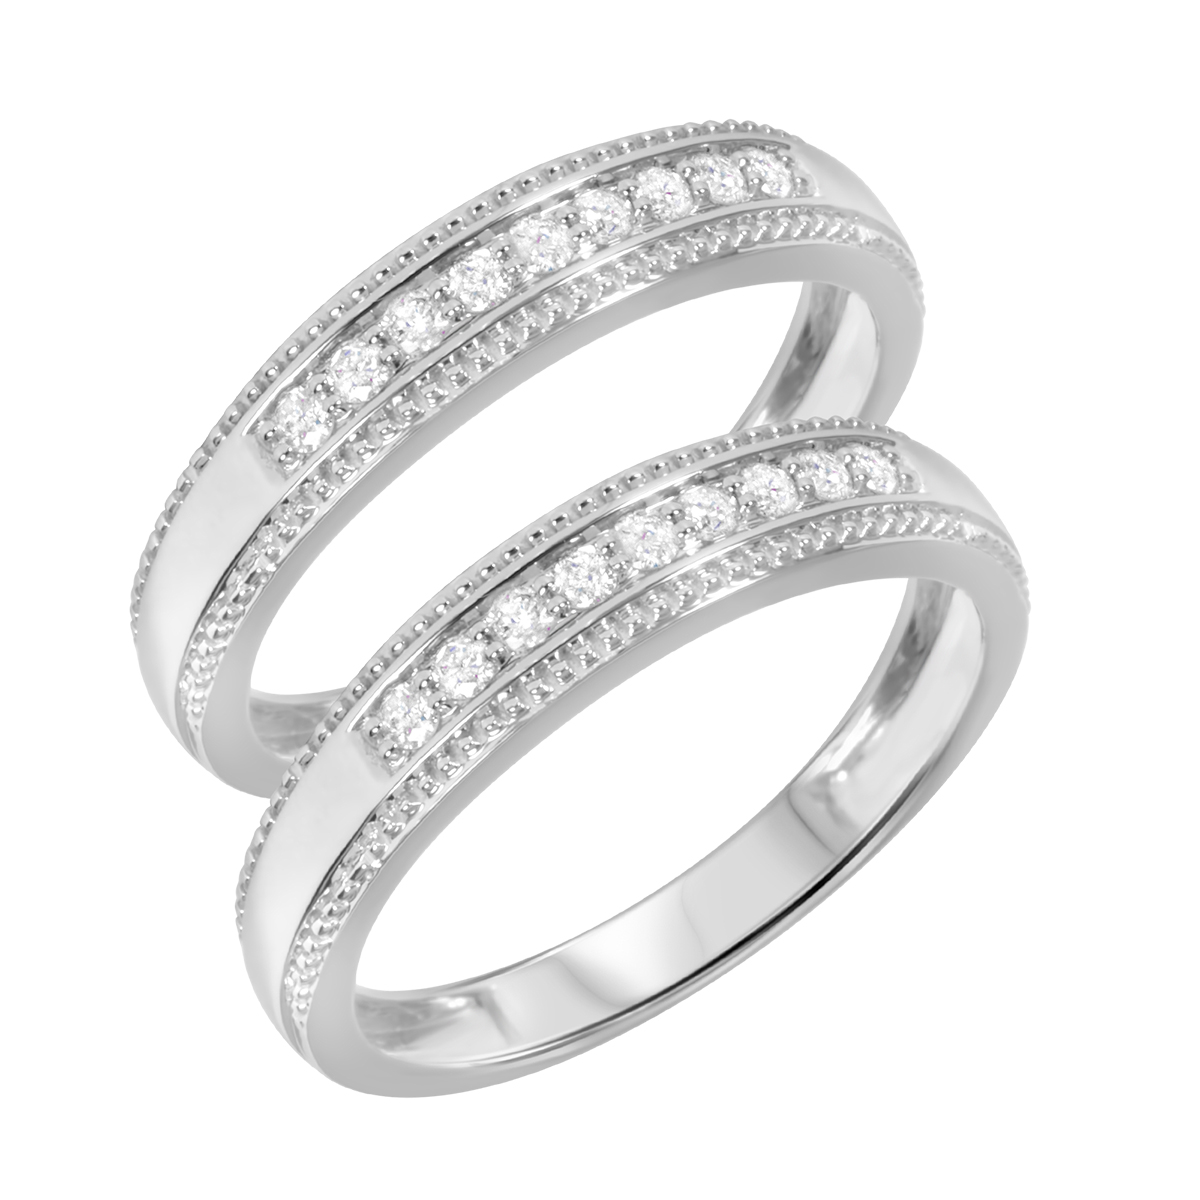 3/8 Carat T.W. Round Cut Mens  Same Sex Wedding Band Set 14K White Gold- Size 8